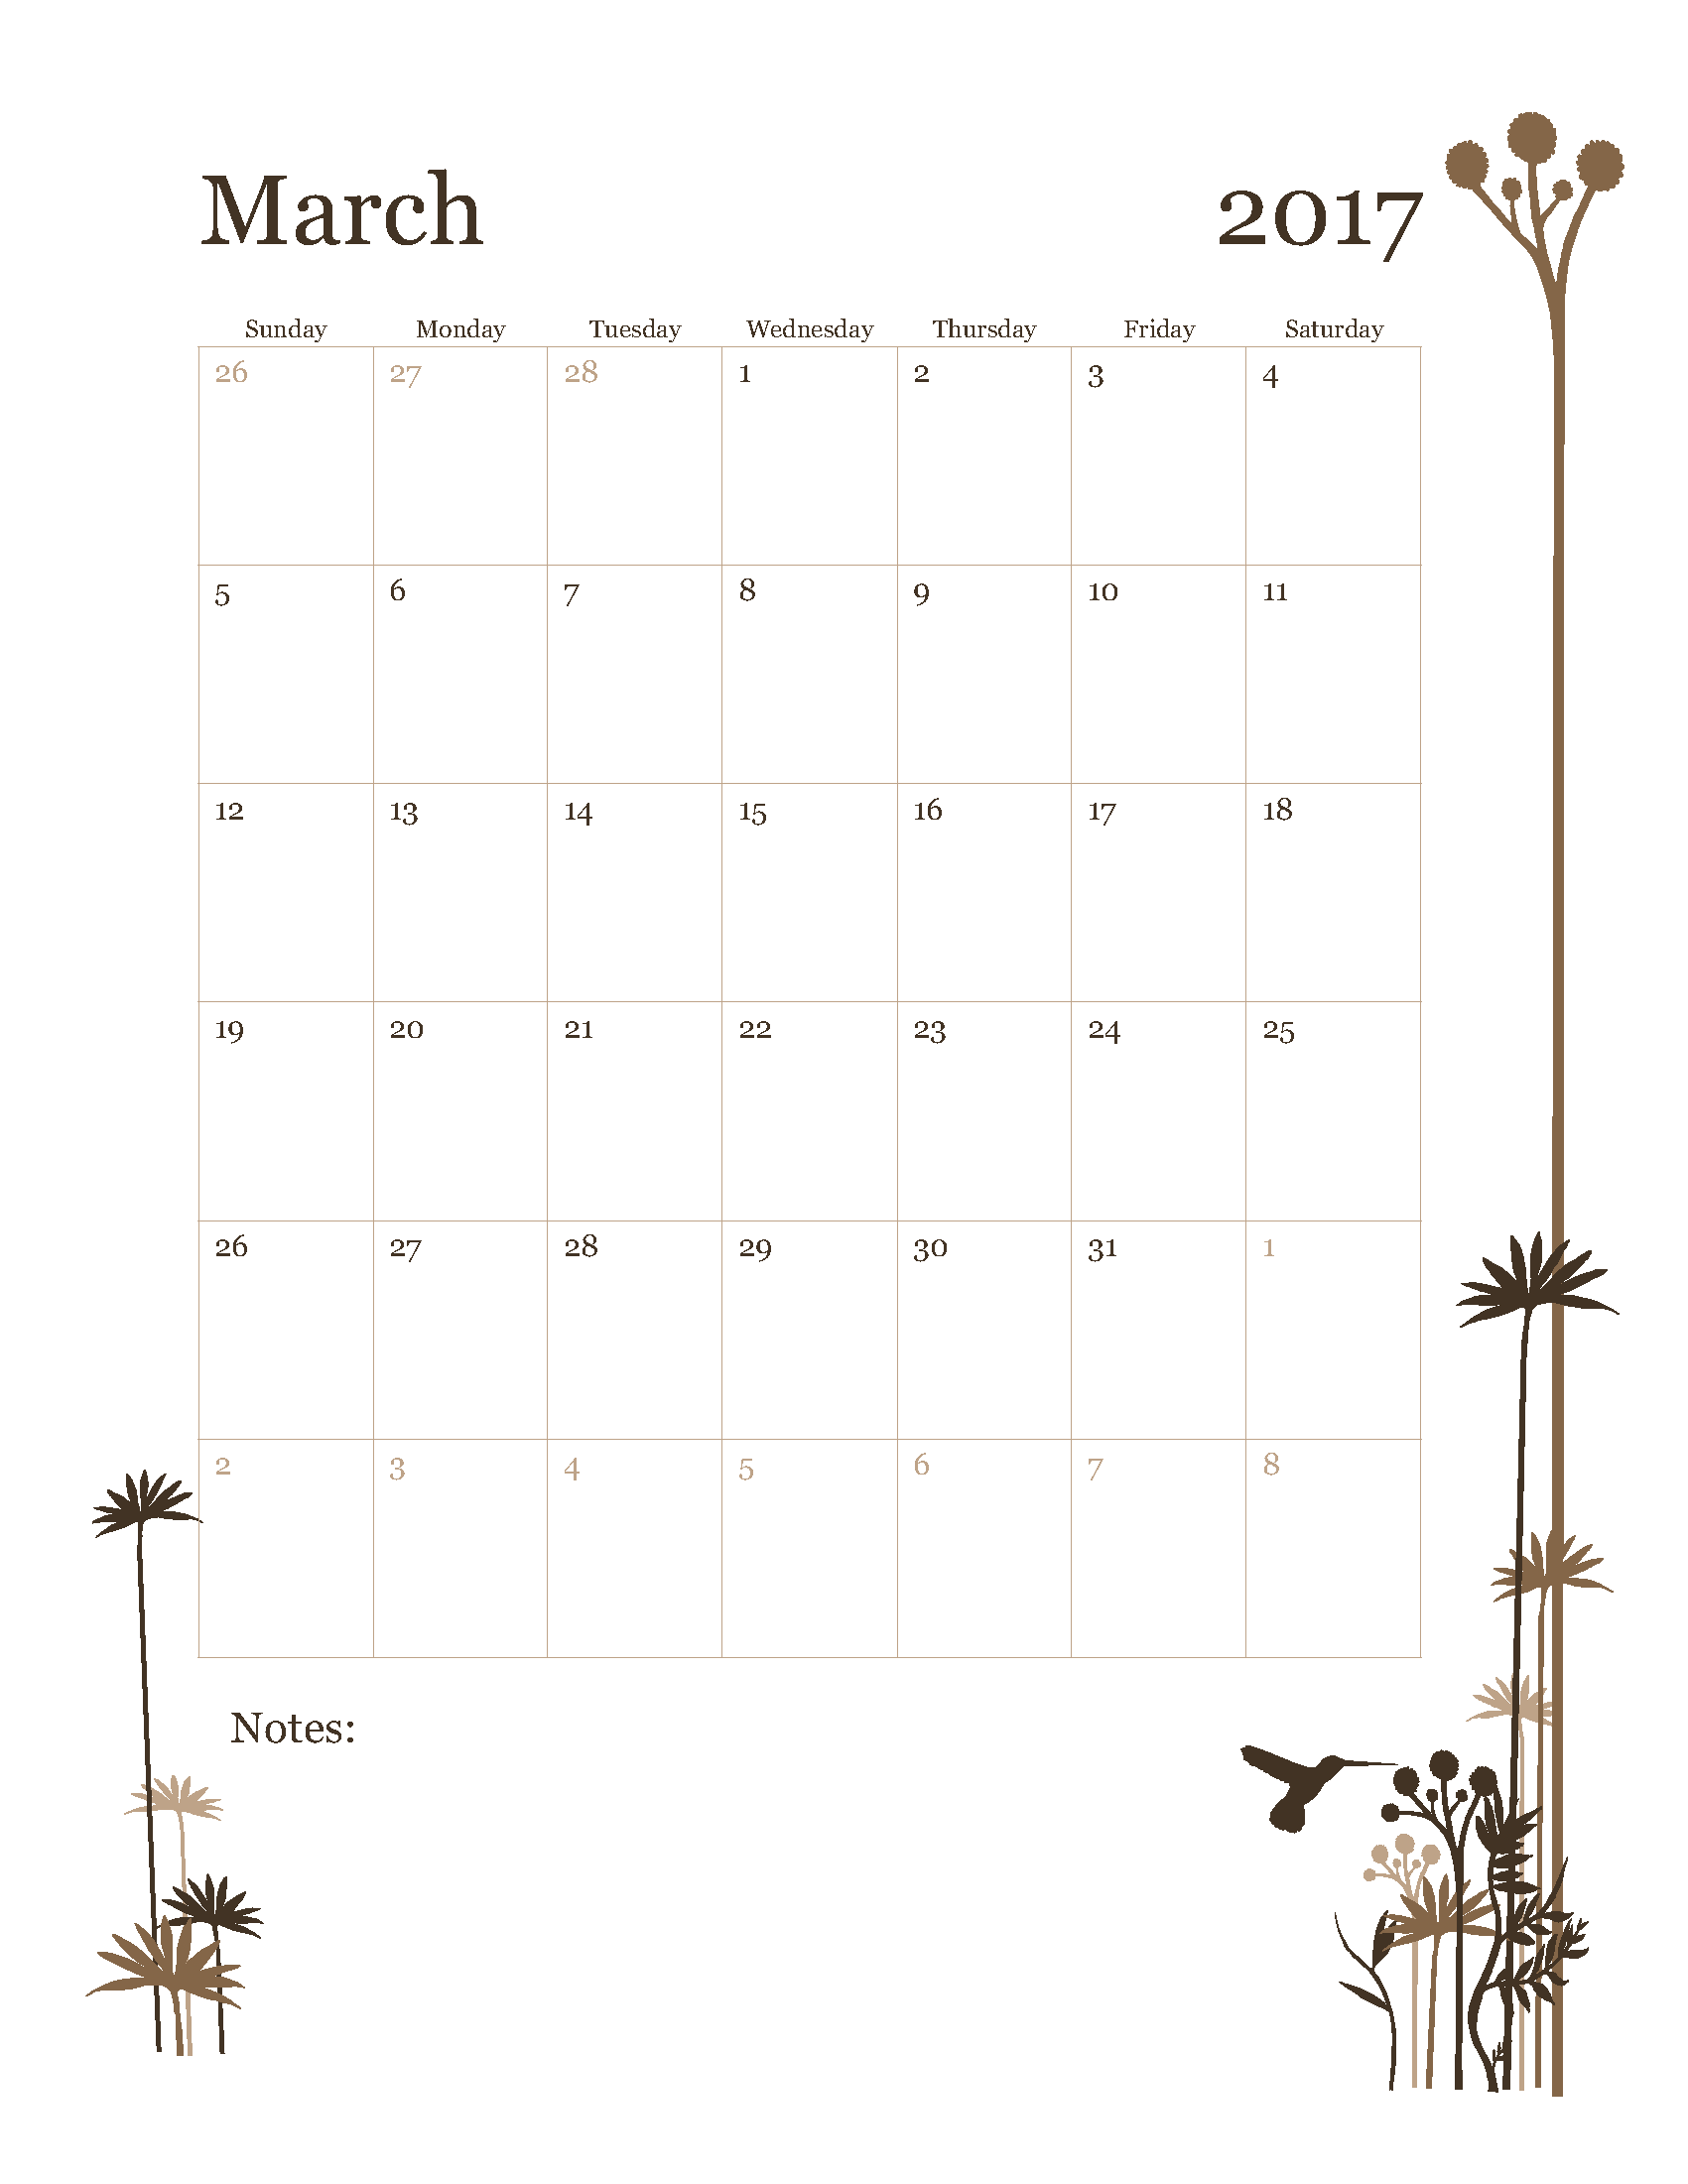 Free March 2017 Calendar Template Printable Start on Sunday - HummingBird design